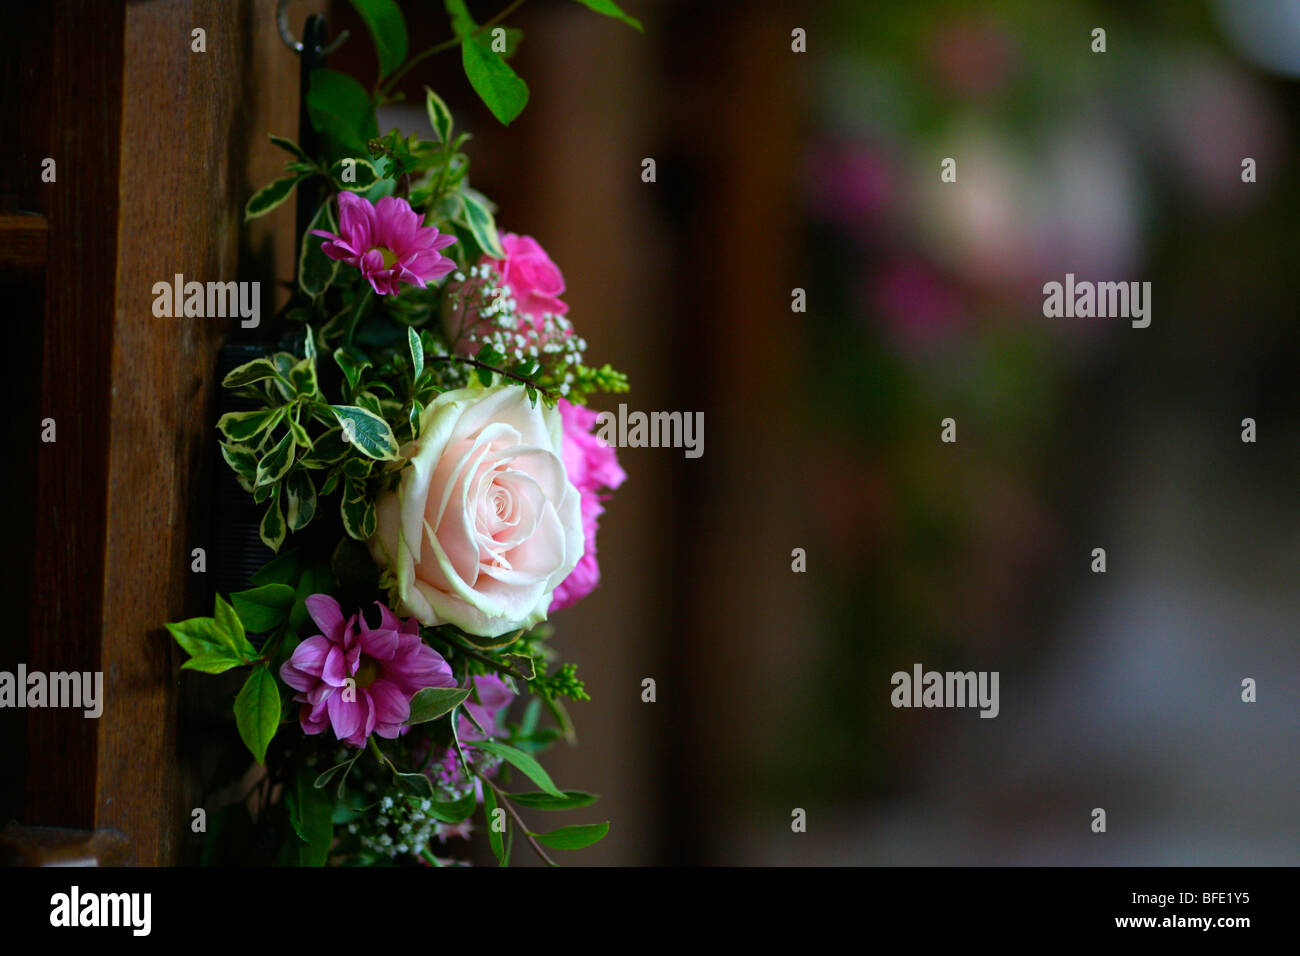 Flowers on the end of a church pew as wedding decoration - Stock Image